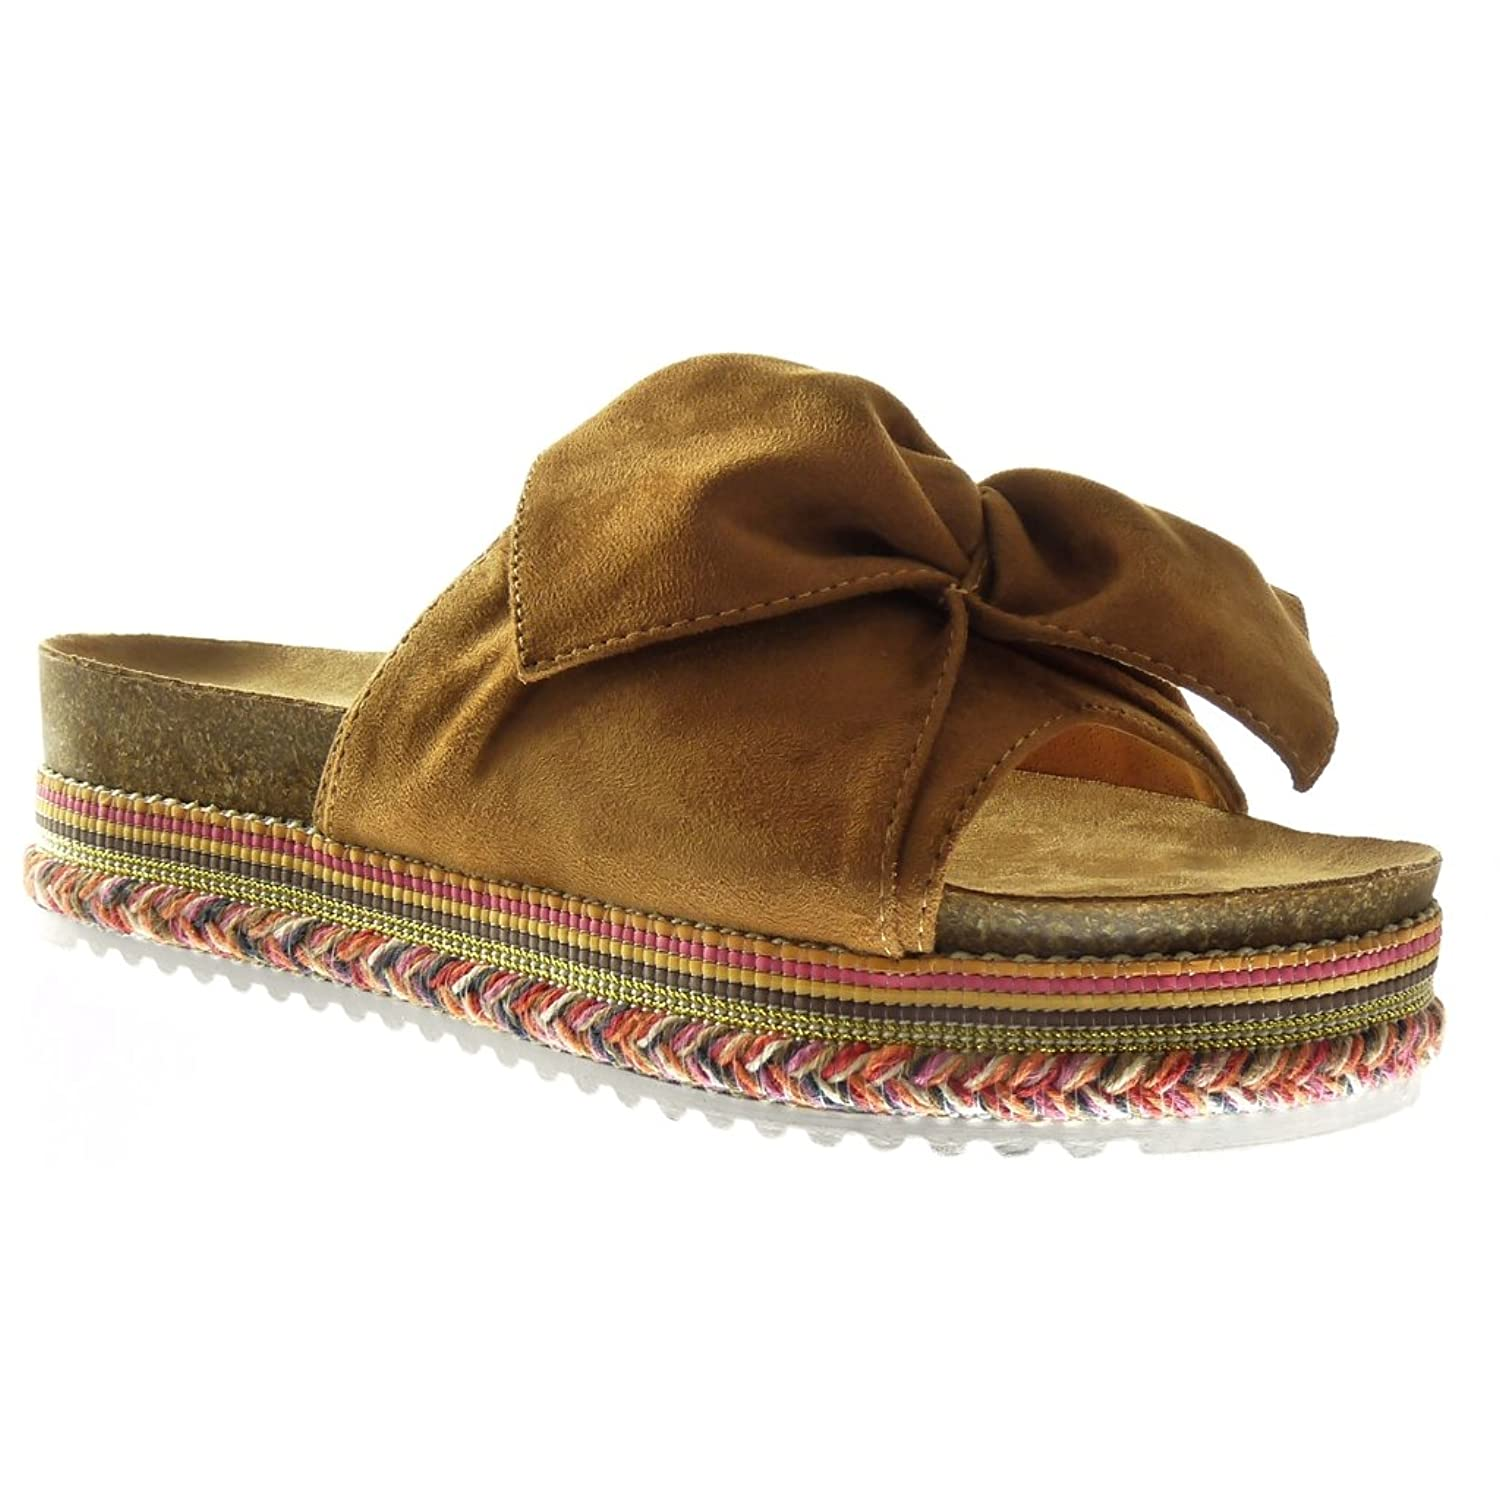 80%OFF Angkorly Chaussure Mode Sandale plateforme slip on